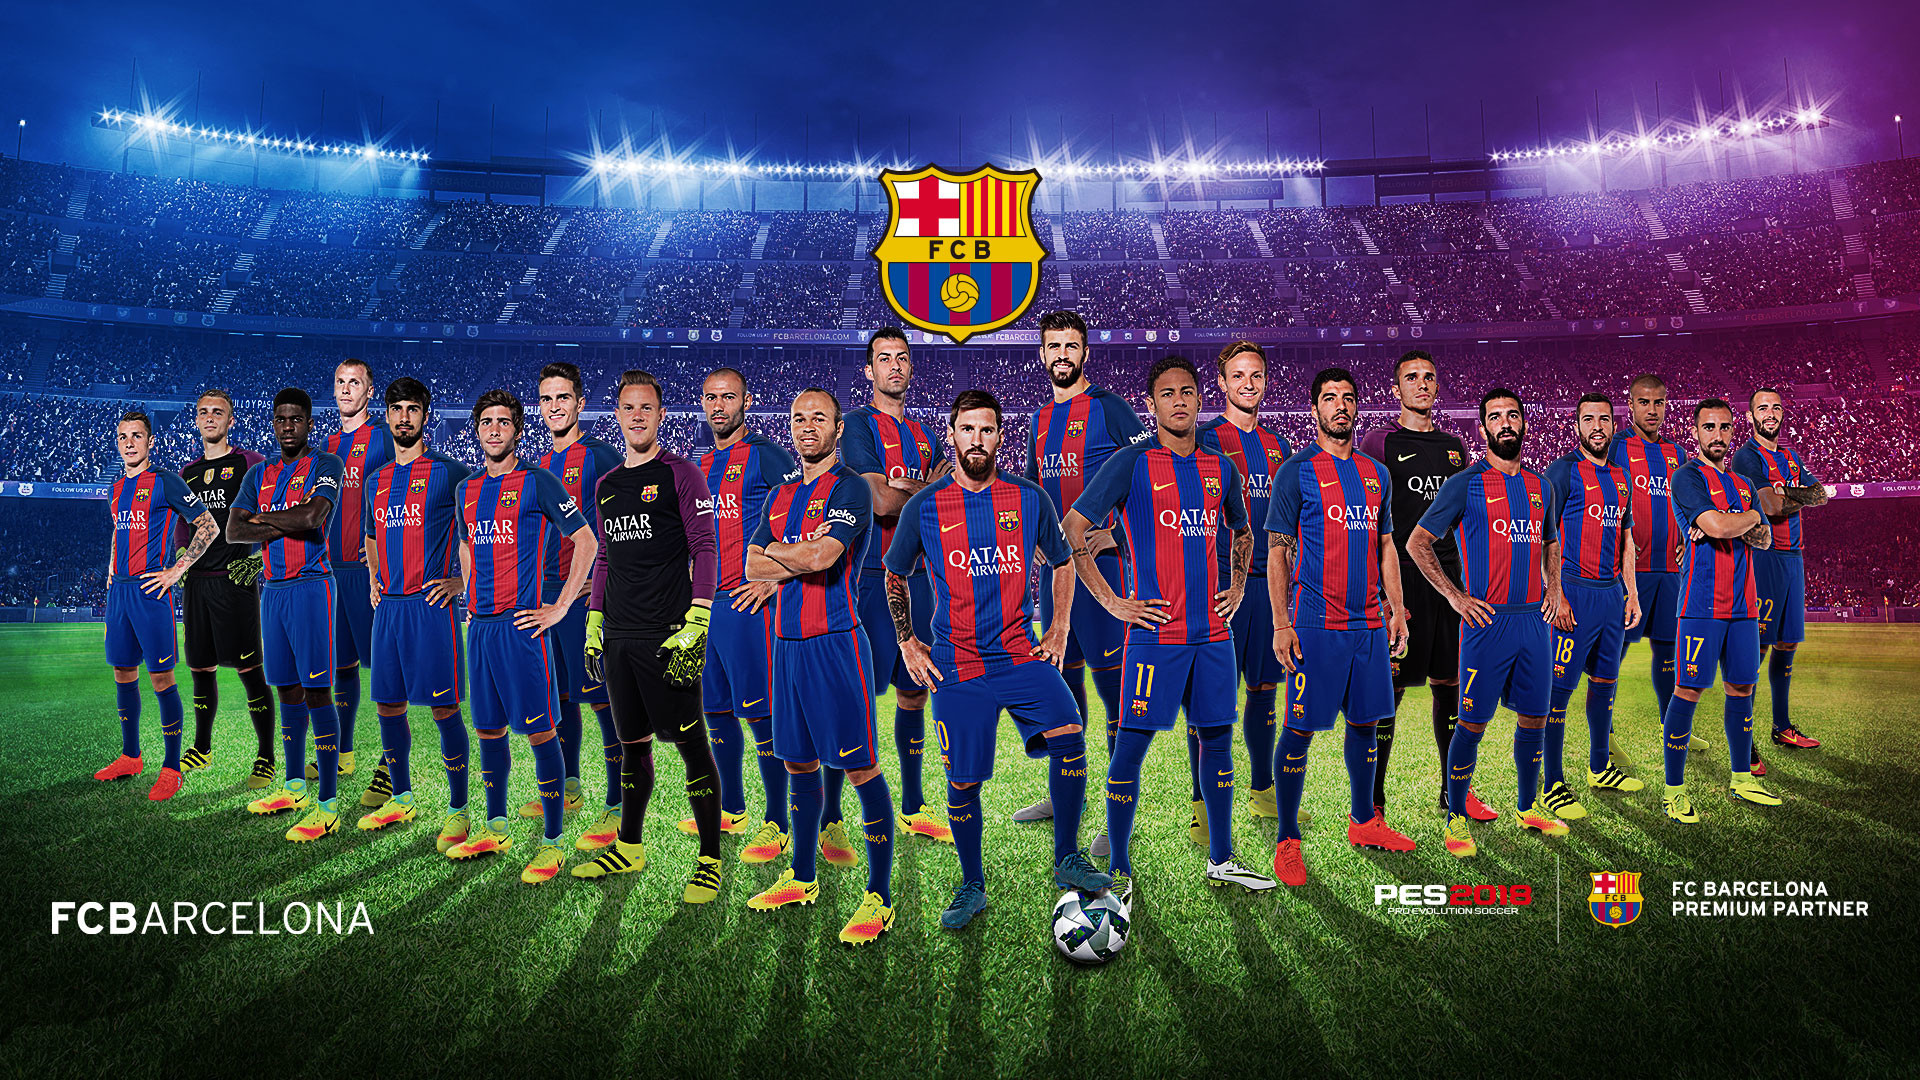 Download Fc Barcelona Wallpaper 4K Iphone